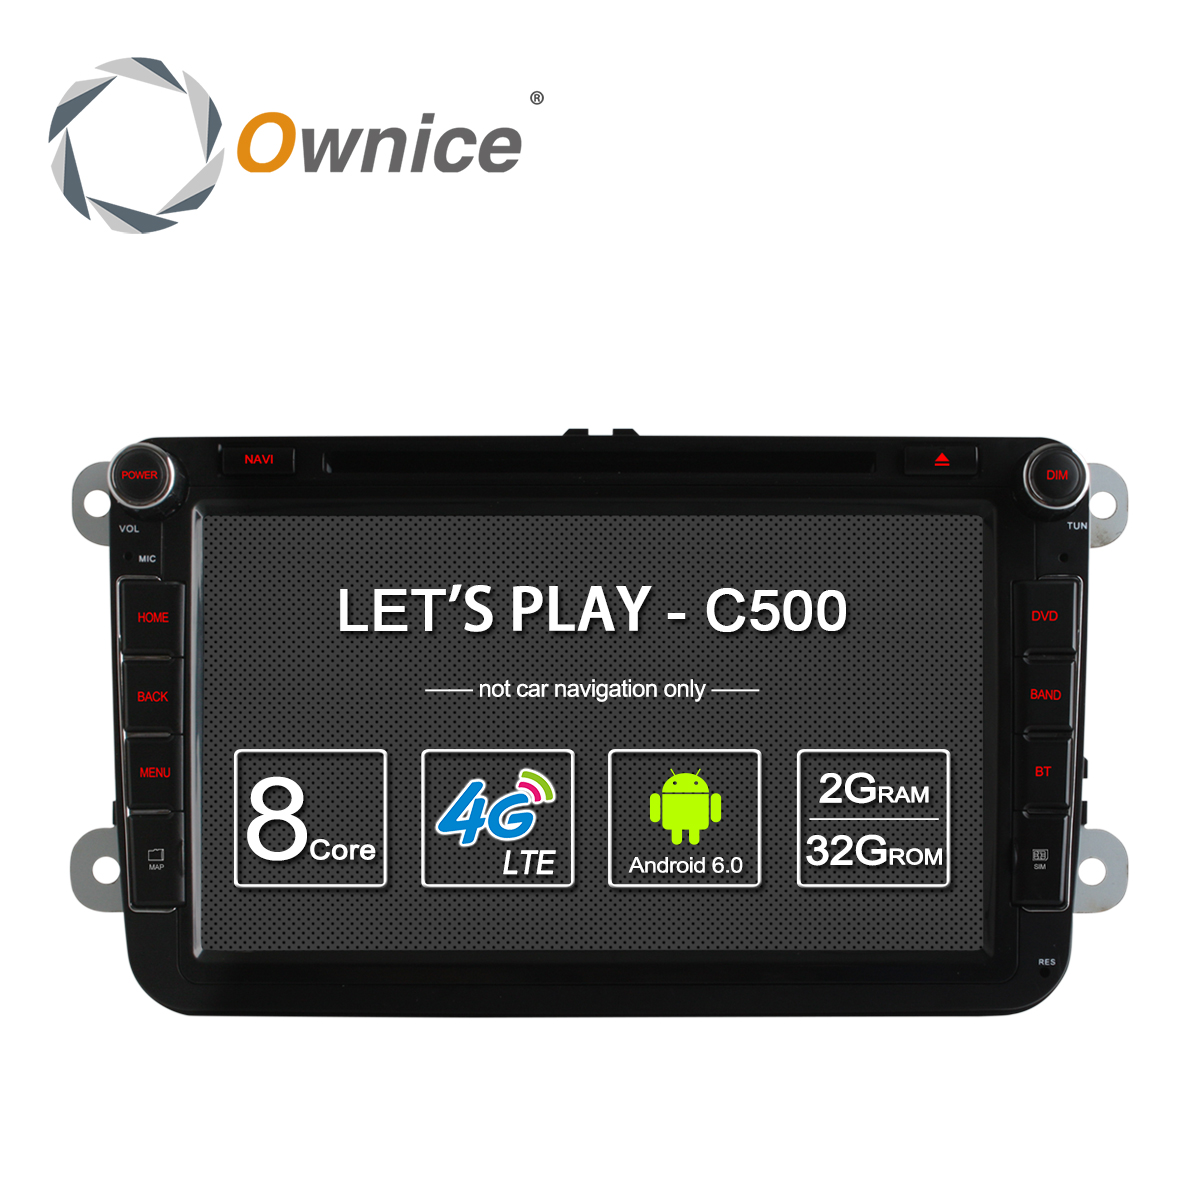 4G SIM LTE Nerwork Ownice C500 Octa 8 Core Android 6.0 2G RAM 2 Din Car DVD GPS Navi Radio Player For VW Skoda Octavia 2 автомобильный dvd плеер joyous kd 7 800 480 2 din 4 4 gps navi toyota rav4 4 4 dvd dual core rds wifi 3g